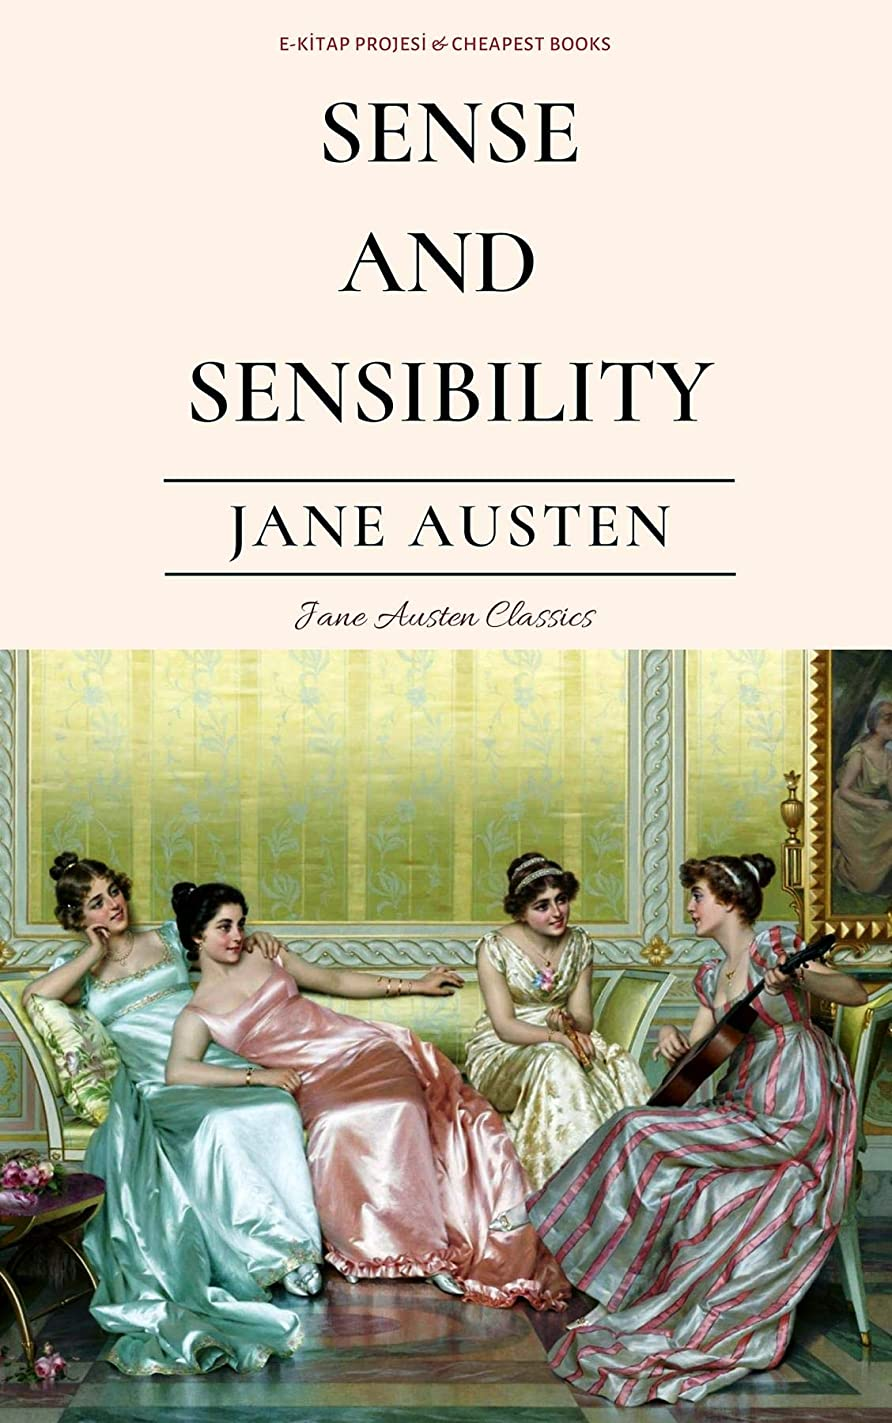 プレビュー飼料部Sense and Sensibility (English Edition)